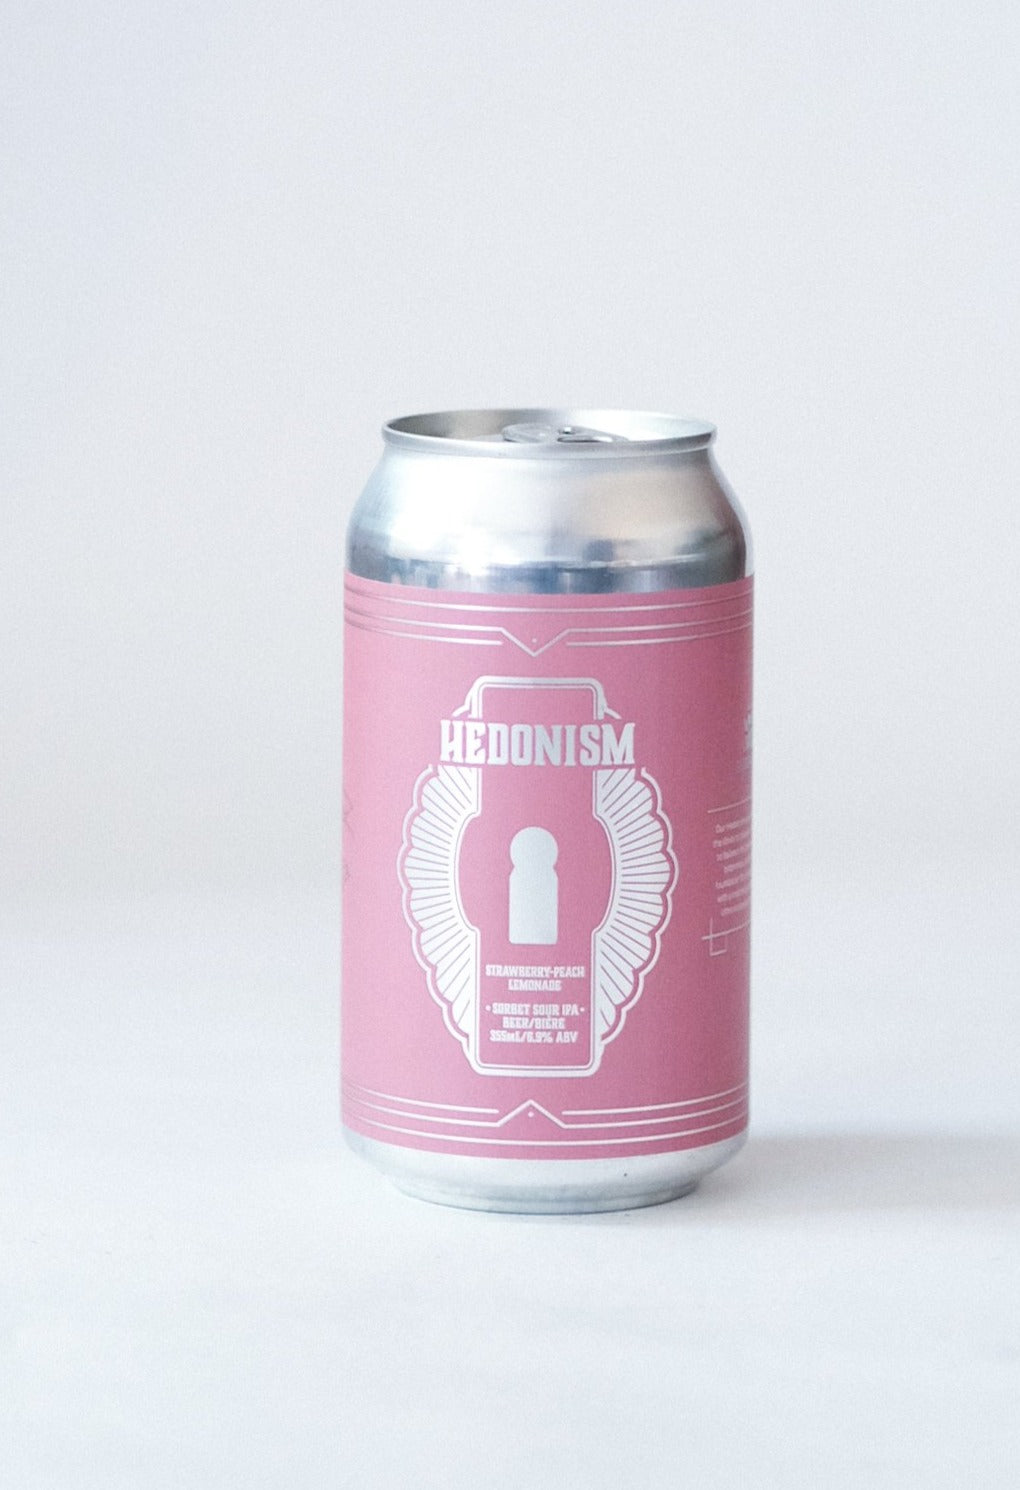 Hedonism - Strawberry Peach Lemonade Sorbet Sour IPA